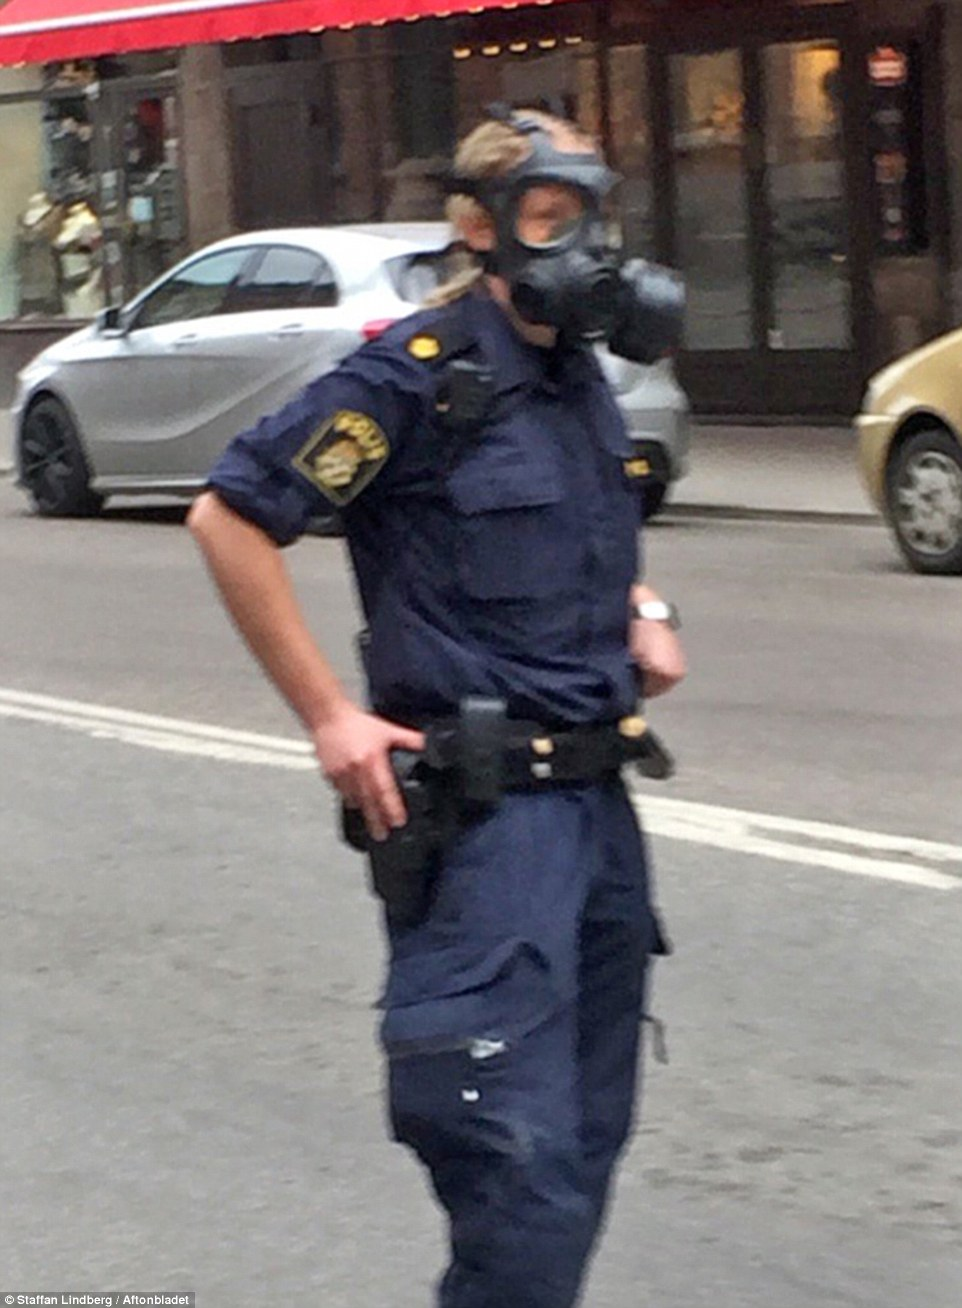 A policeman was seen wearing a gas mask in the city centre